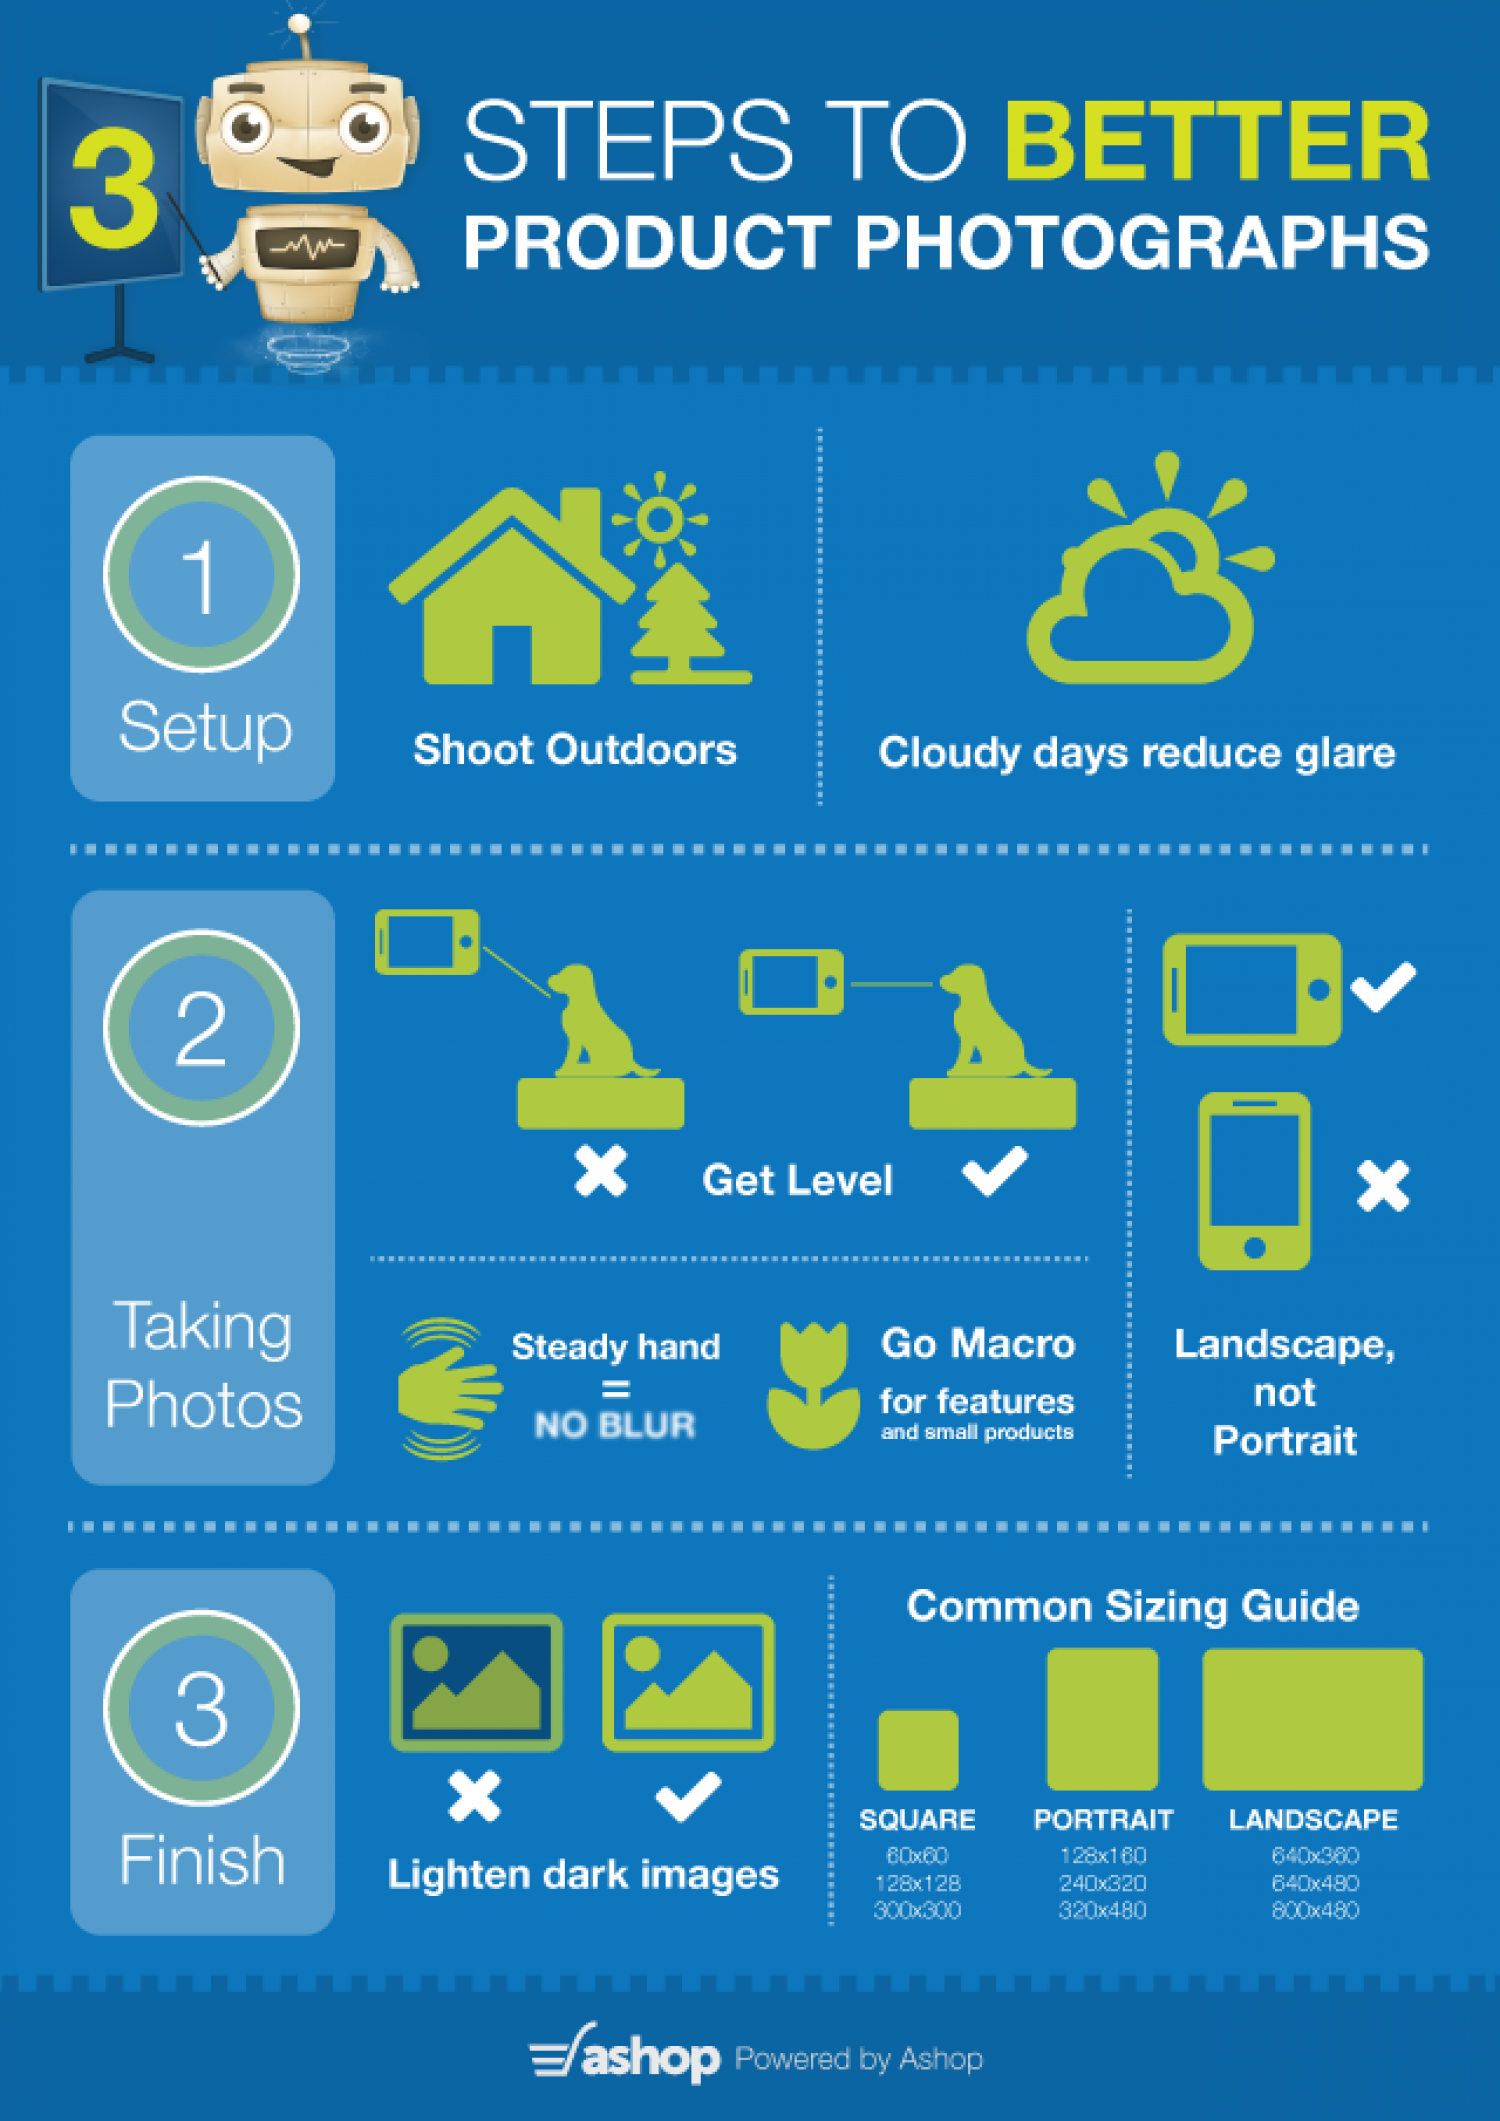 3 Tips for Better Product Photographs Infographic